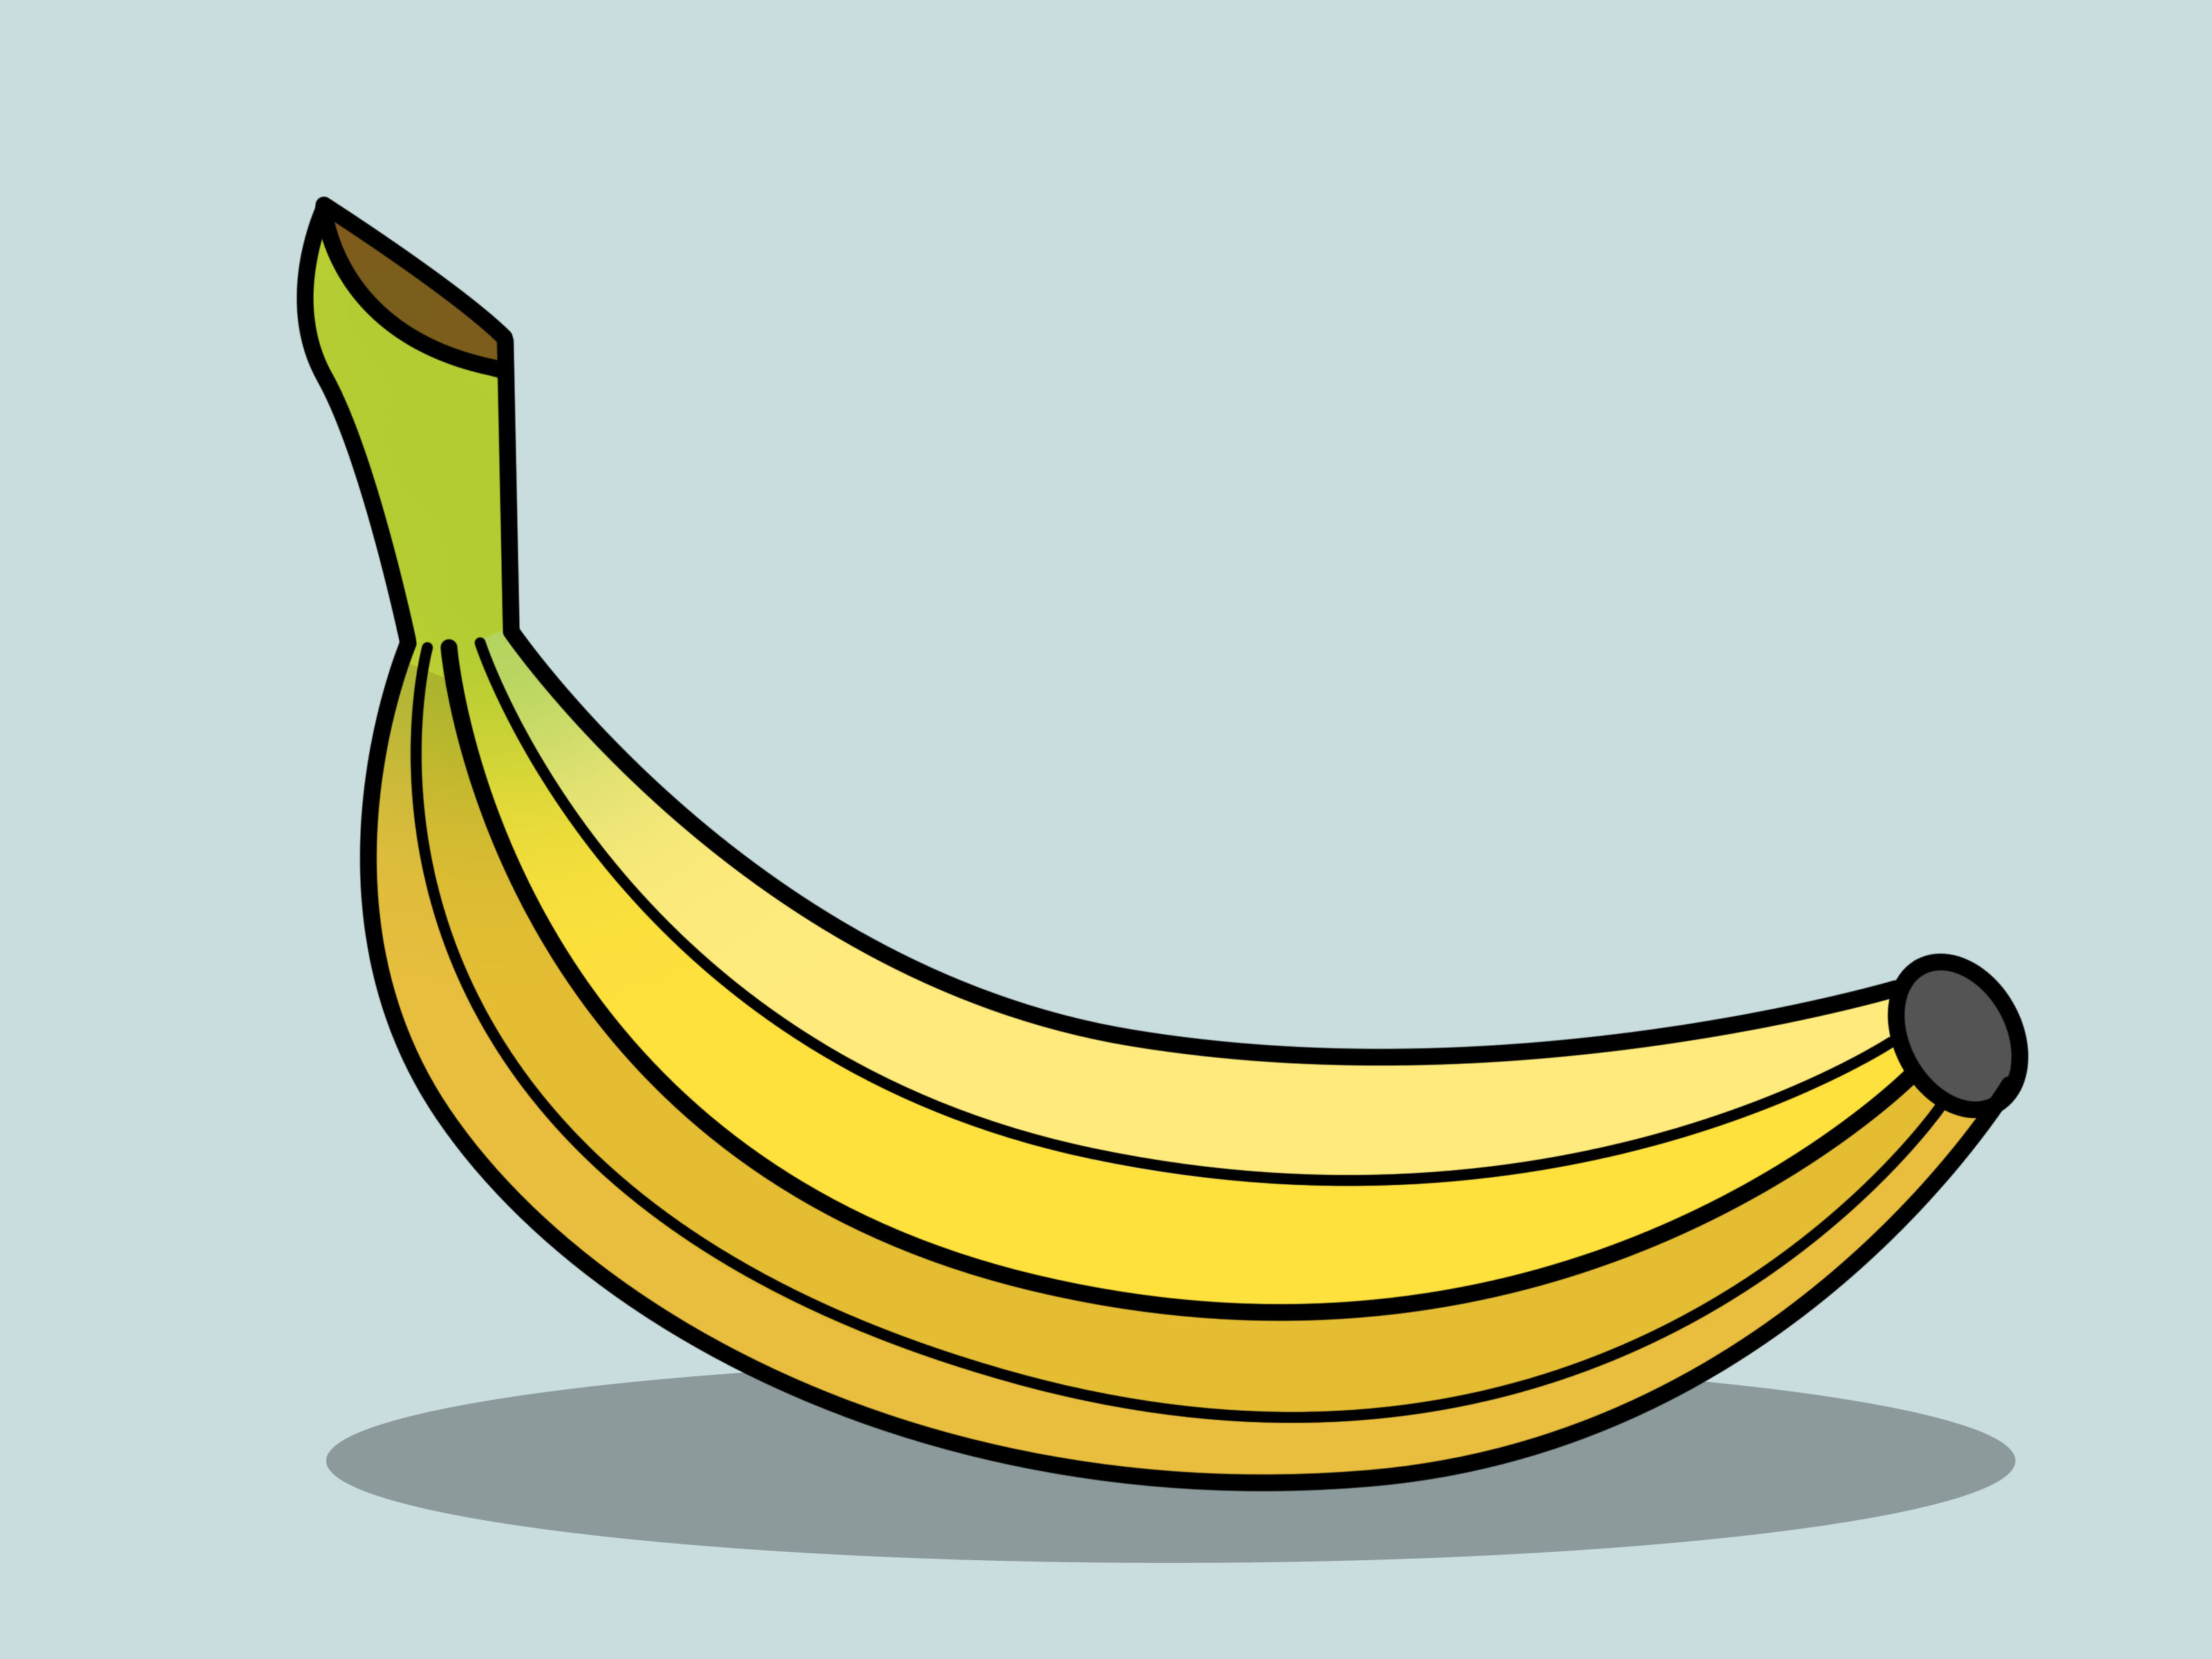 For kids sketch picture. Banana clipart banana drawing svg royalty free library